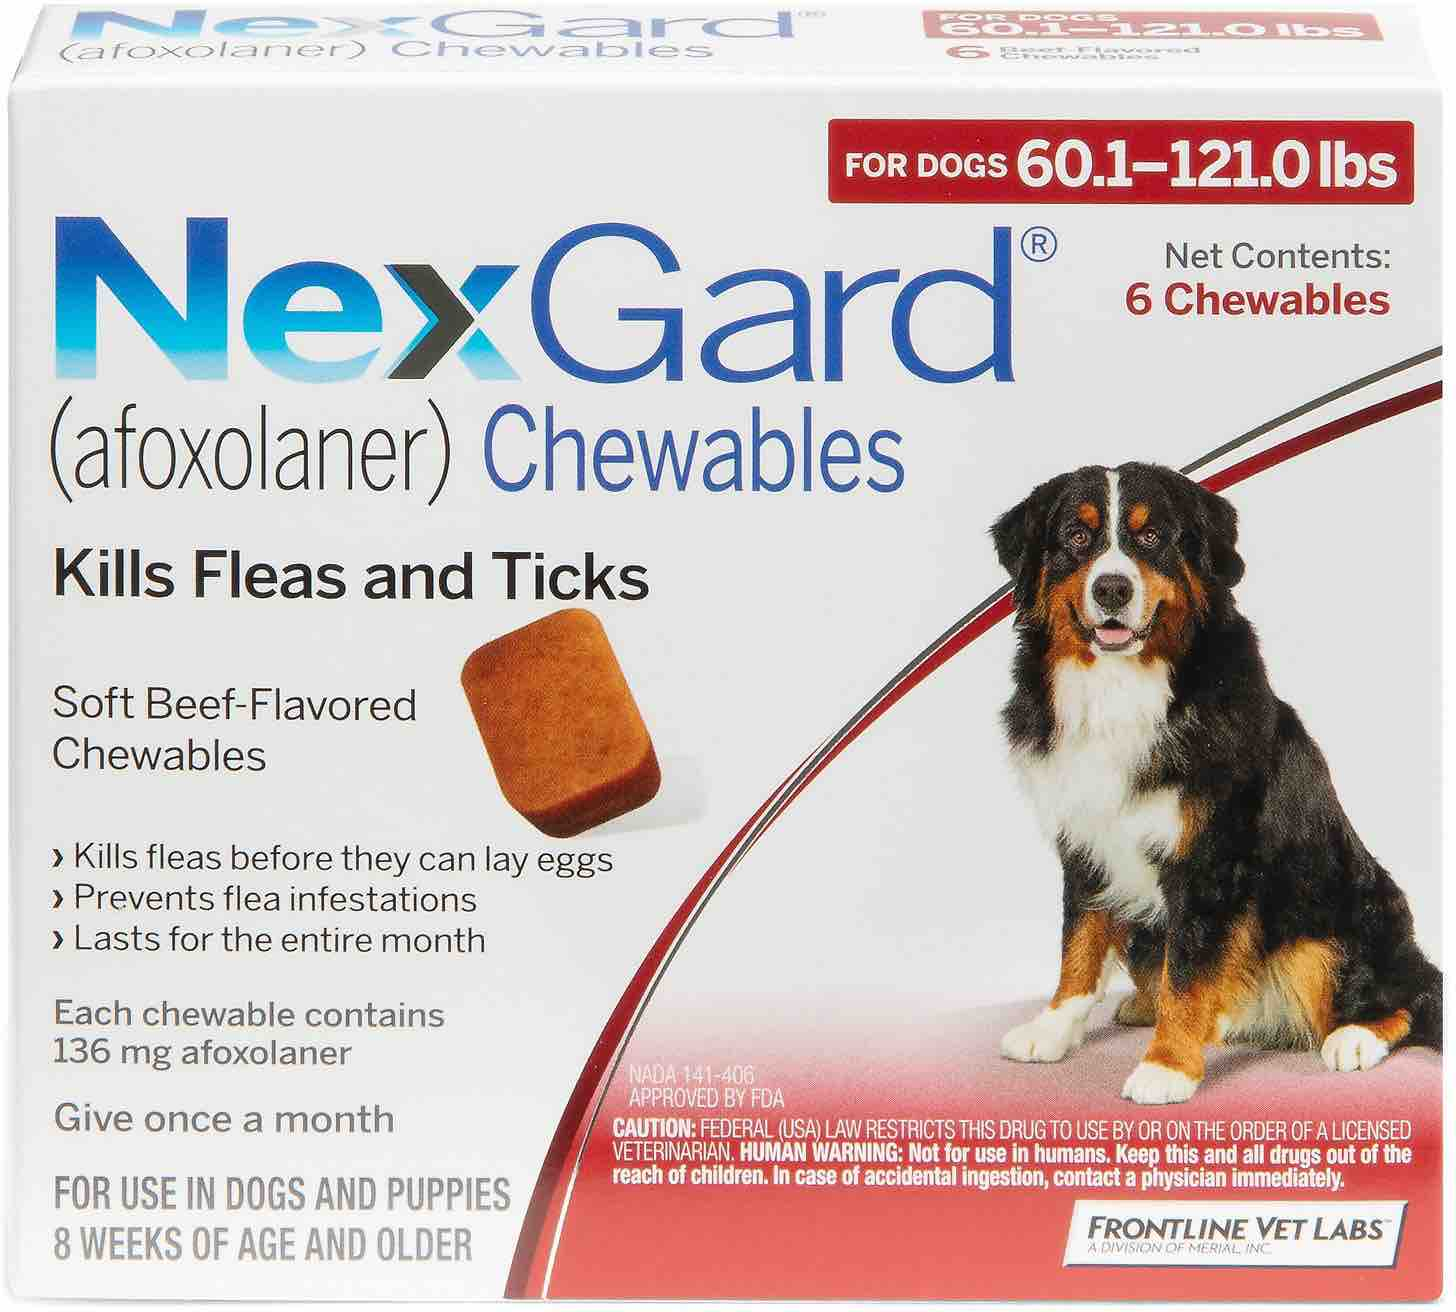 NexGard 6 chewables for dogs 60.1-121 lbs (Red) 1